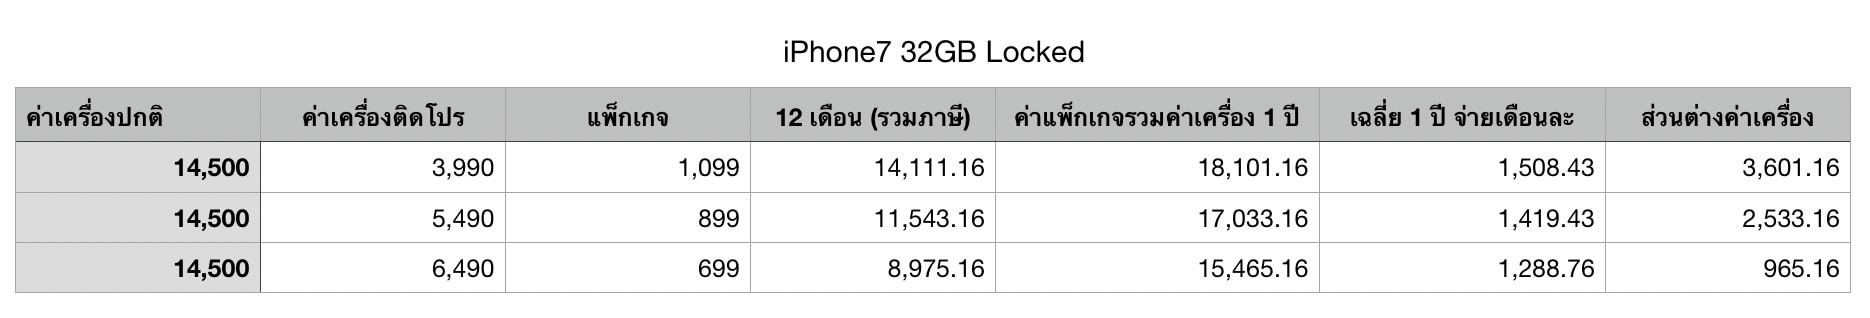 Iphone 7 7 Plus Truemove H Feb 2020 1 Year